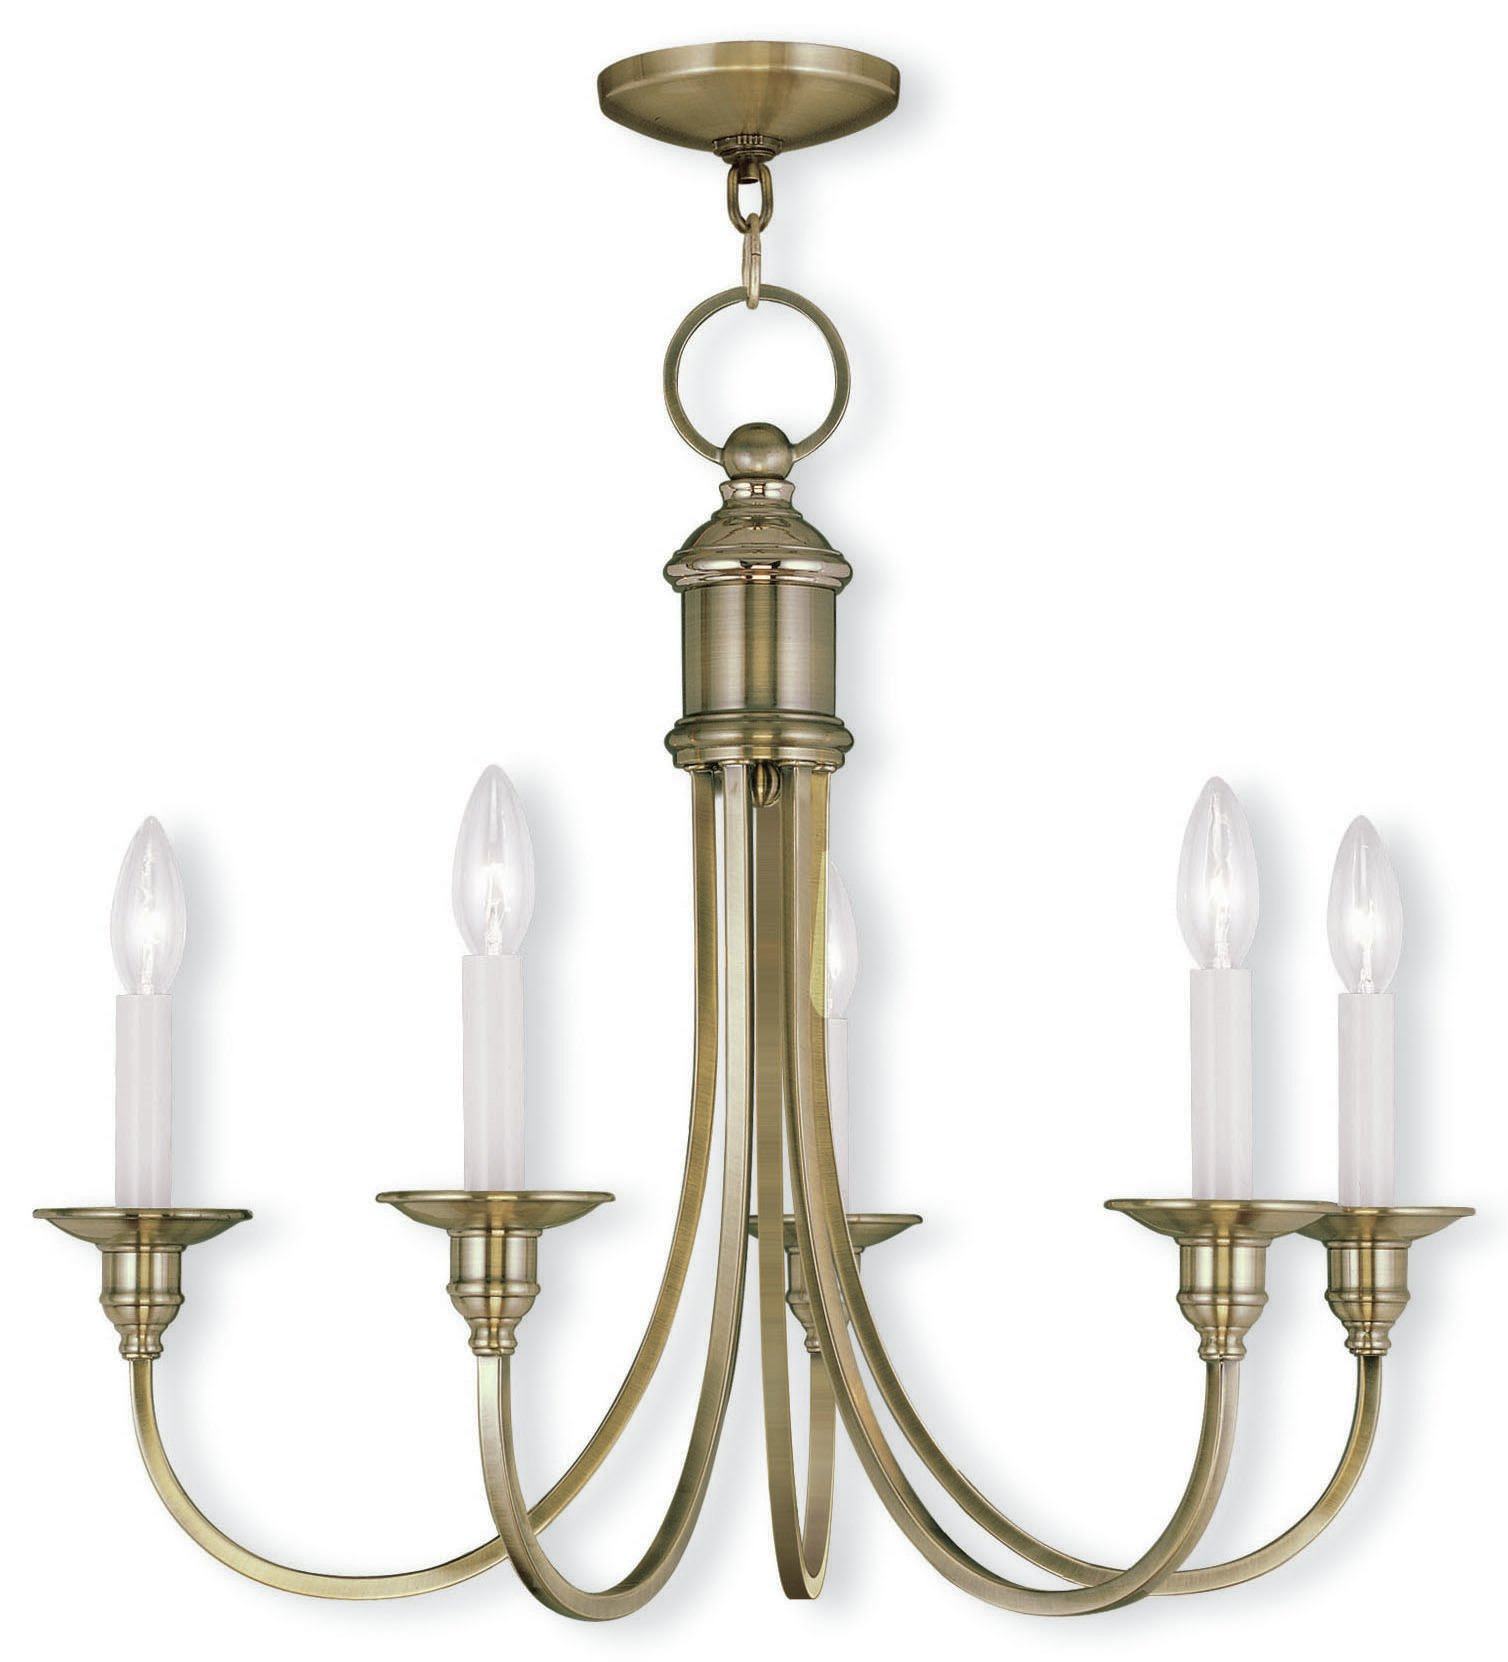 Eckard 5 Light Candle Style Chandelier Intended For Florentina 5 Light Candle Style Chandeliers (Gallery 30 of 30)